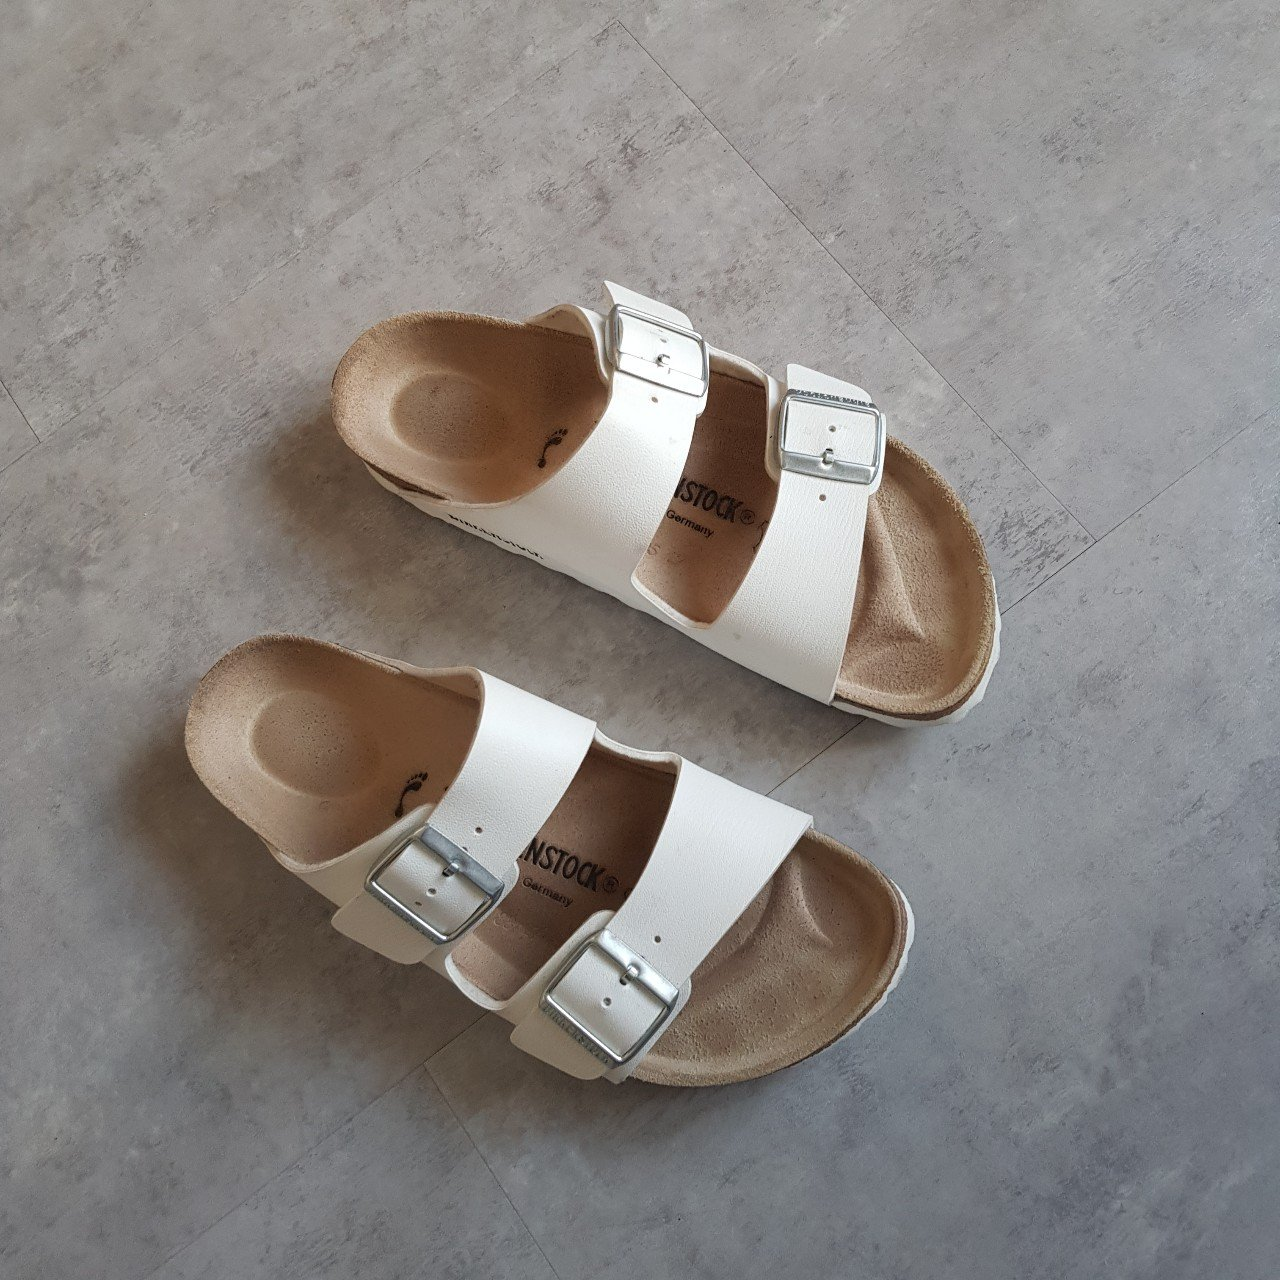 82a3c5161b1c BIRKENSTOCK ARIZONA DOUBLE STRAP WHITE SANDALS - GREAT ONLY - Depop